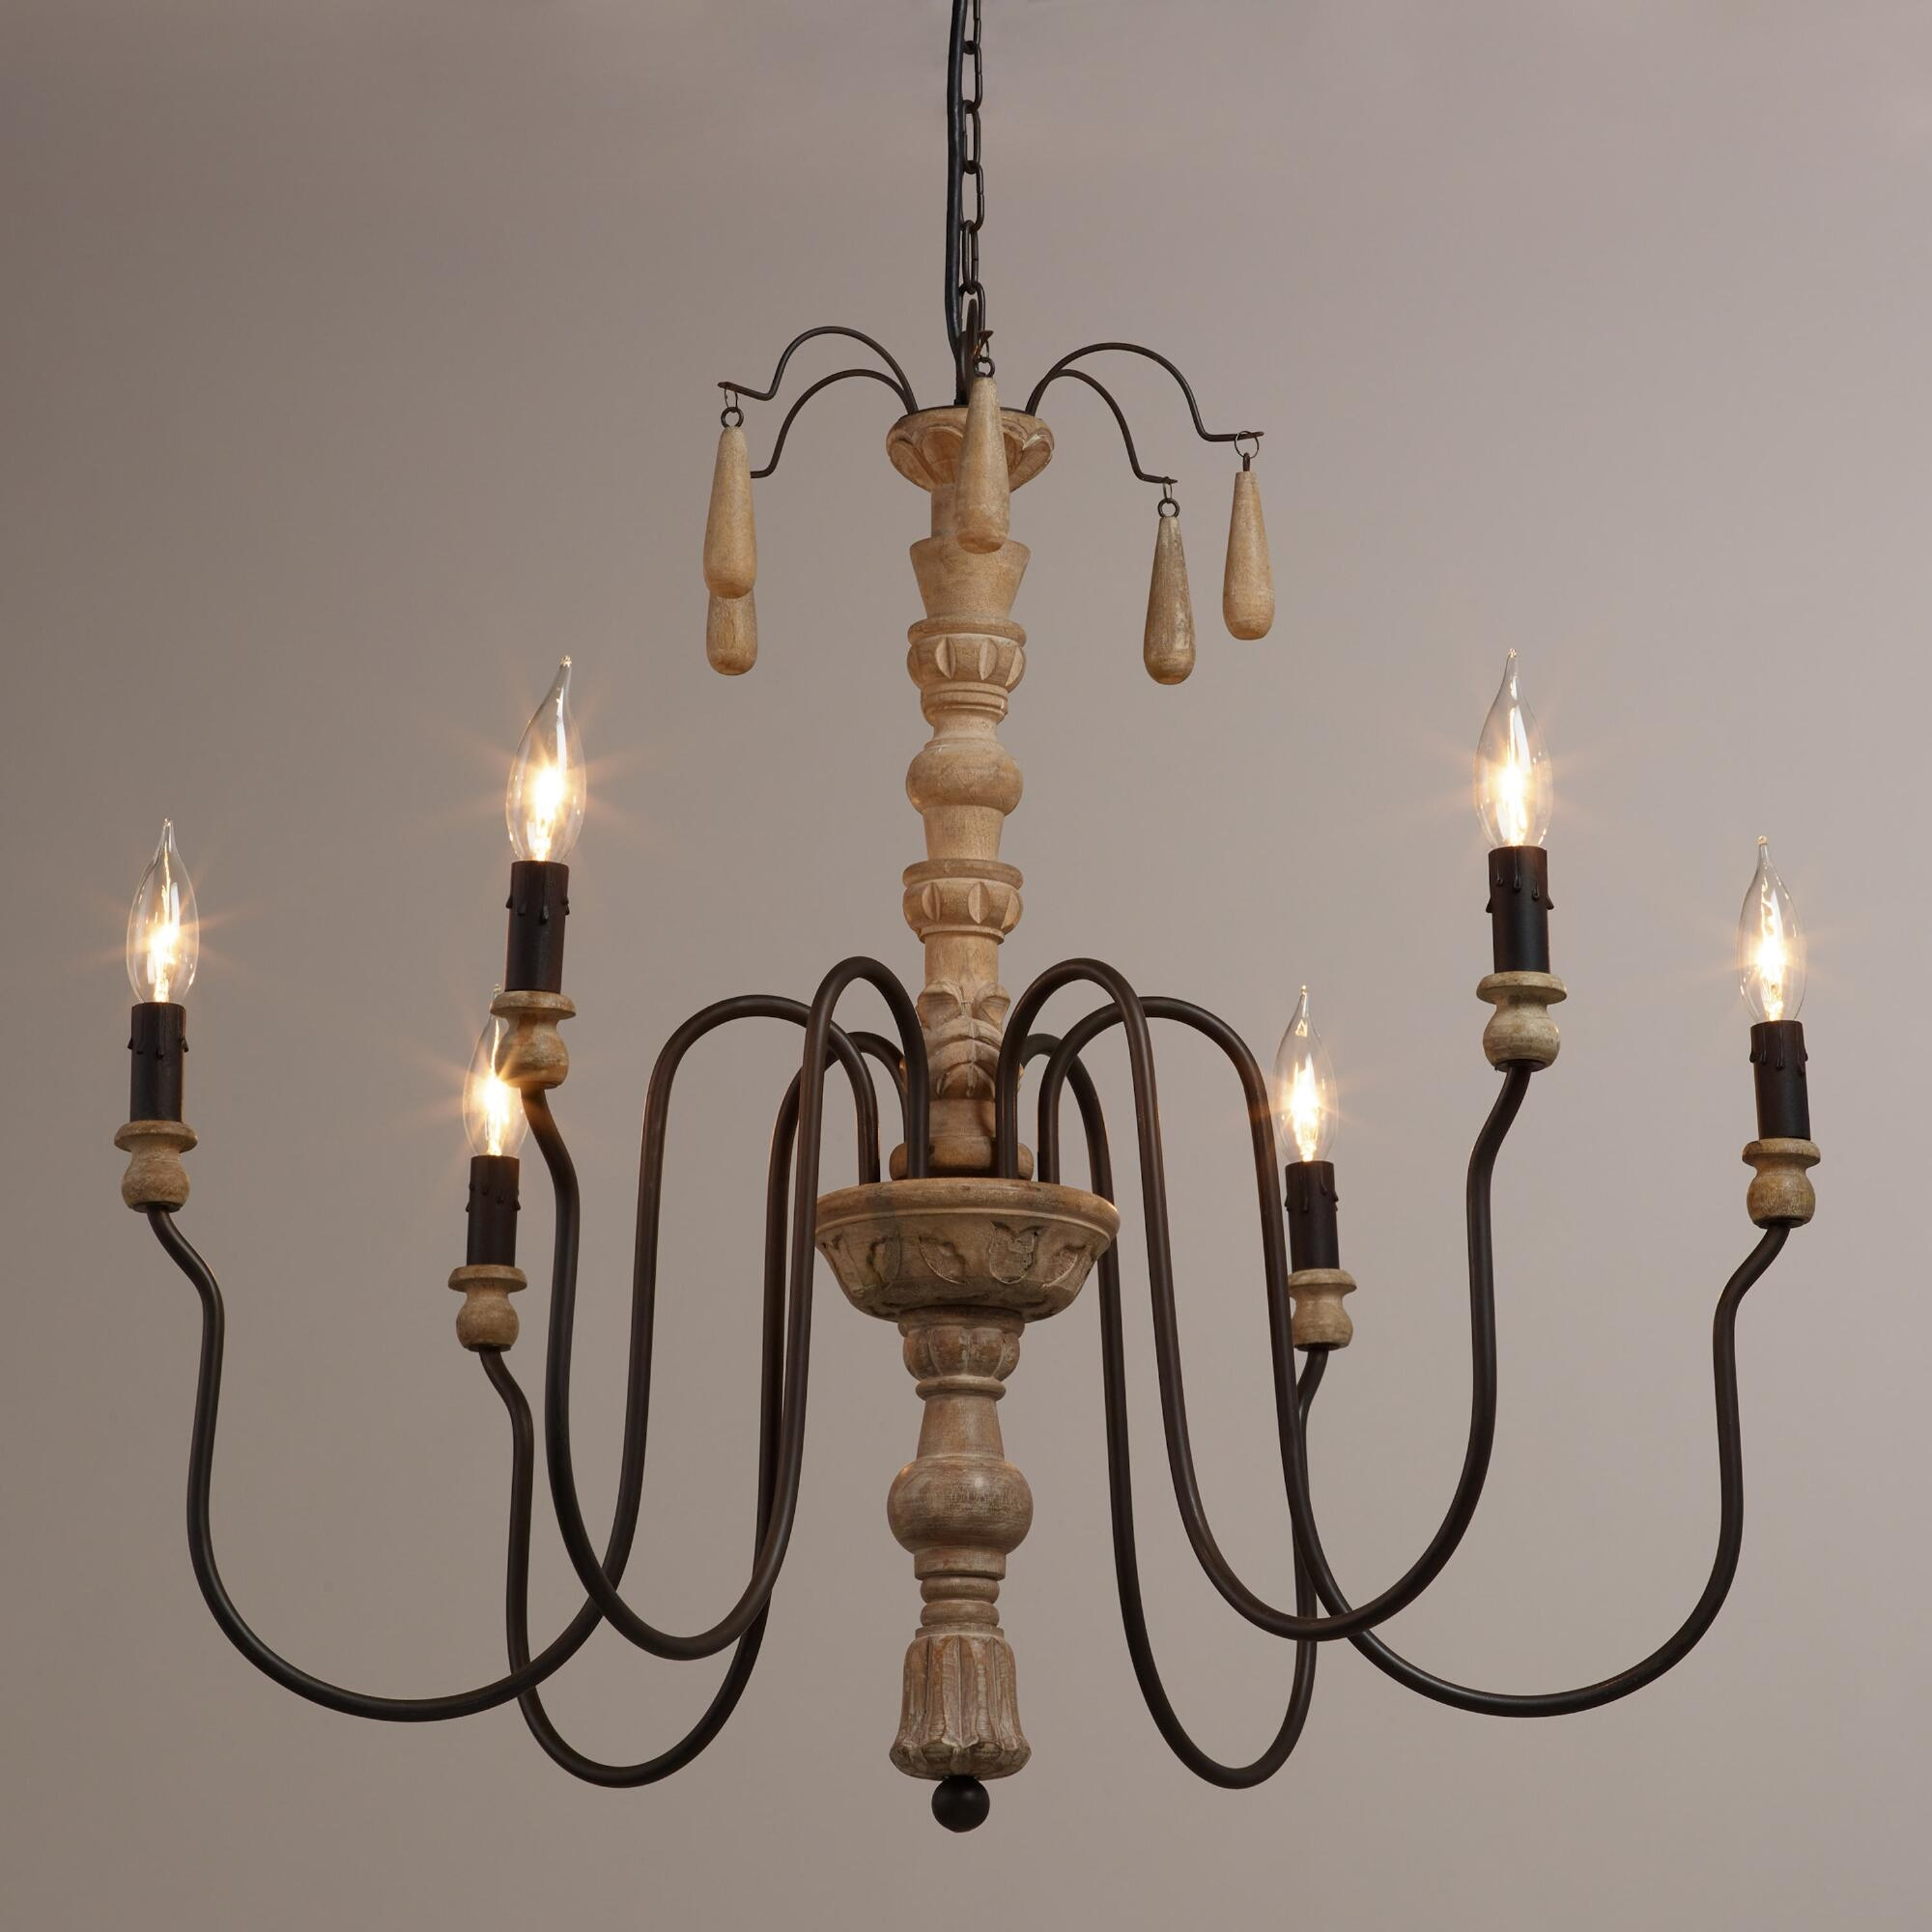 Wood Beaded Corinne Chandelier Pedestal Master Bedrooms And Regarding French Wooden Chandelier (Image 15 of 15)